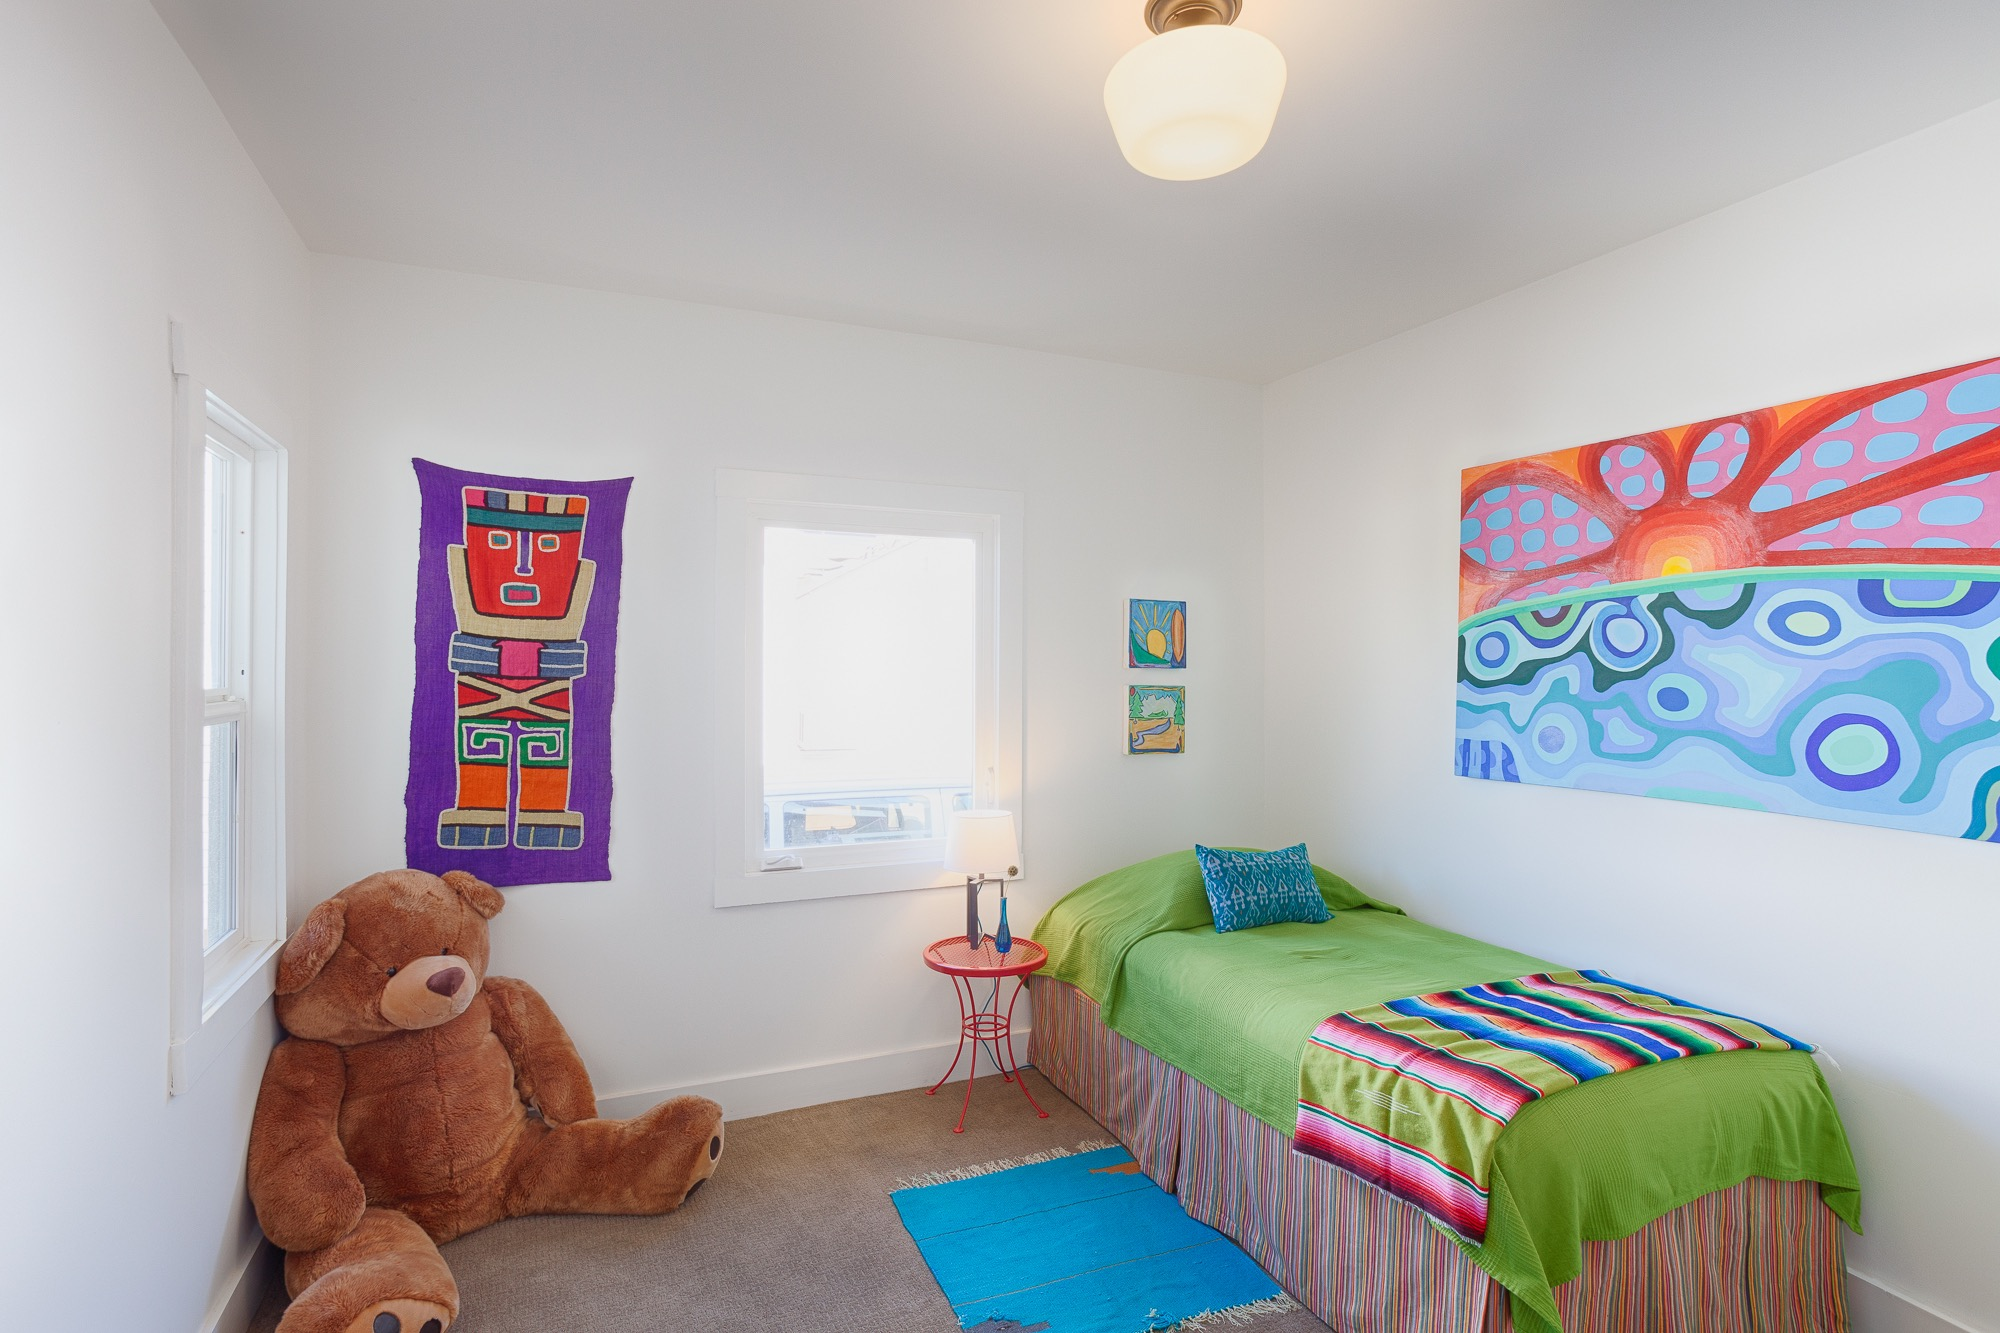 Multicolored Kids Bedroom With Big Teddy Bear (View 26 of 35)